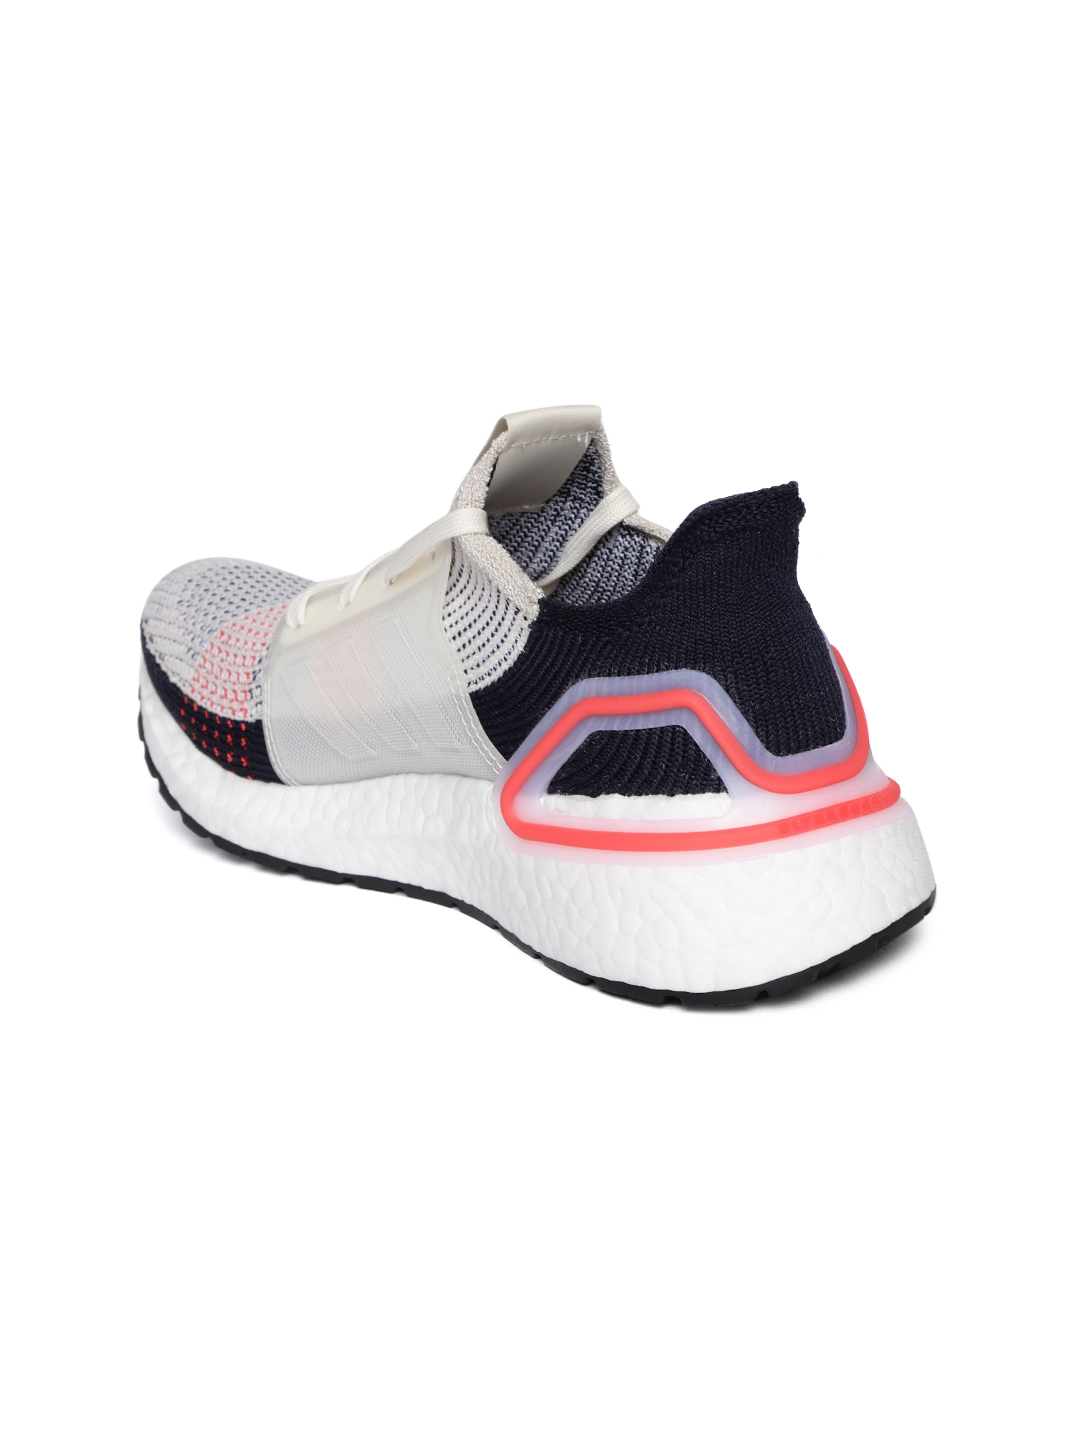 4811cadcb02ea Buy ADIDAS Women Off White   Navy Blue Ultraboost 19 Running Shoes ...